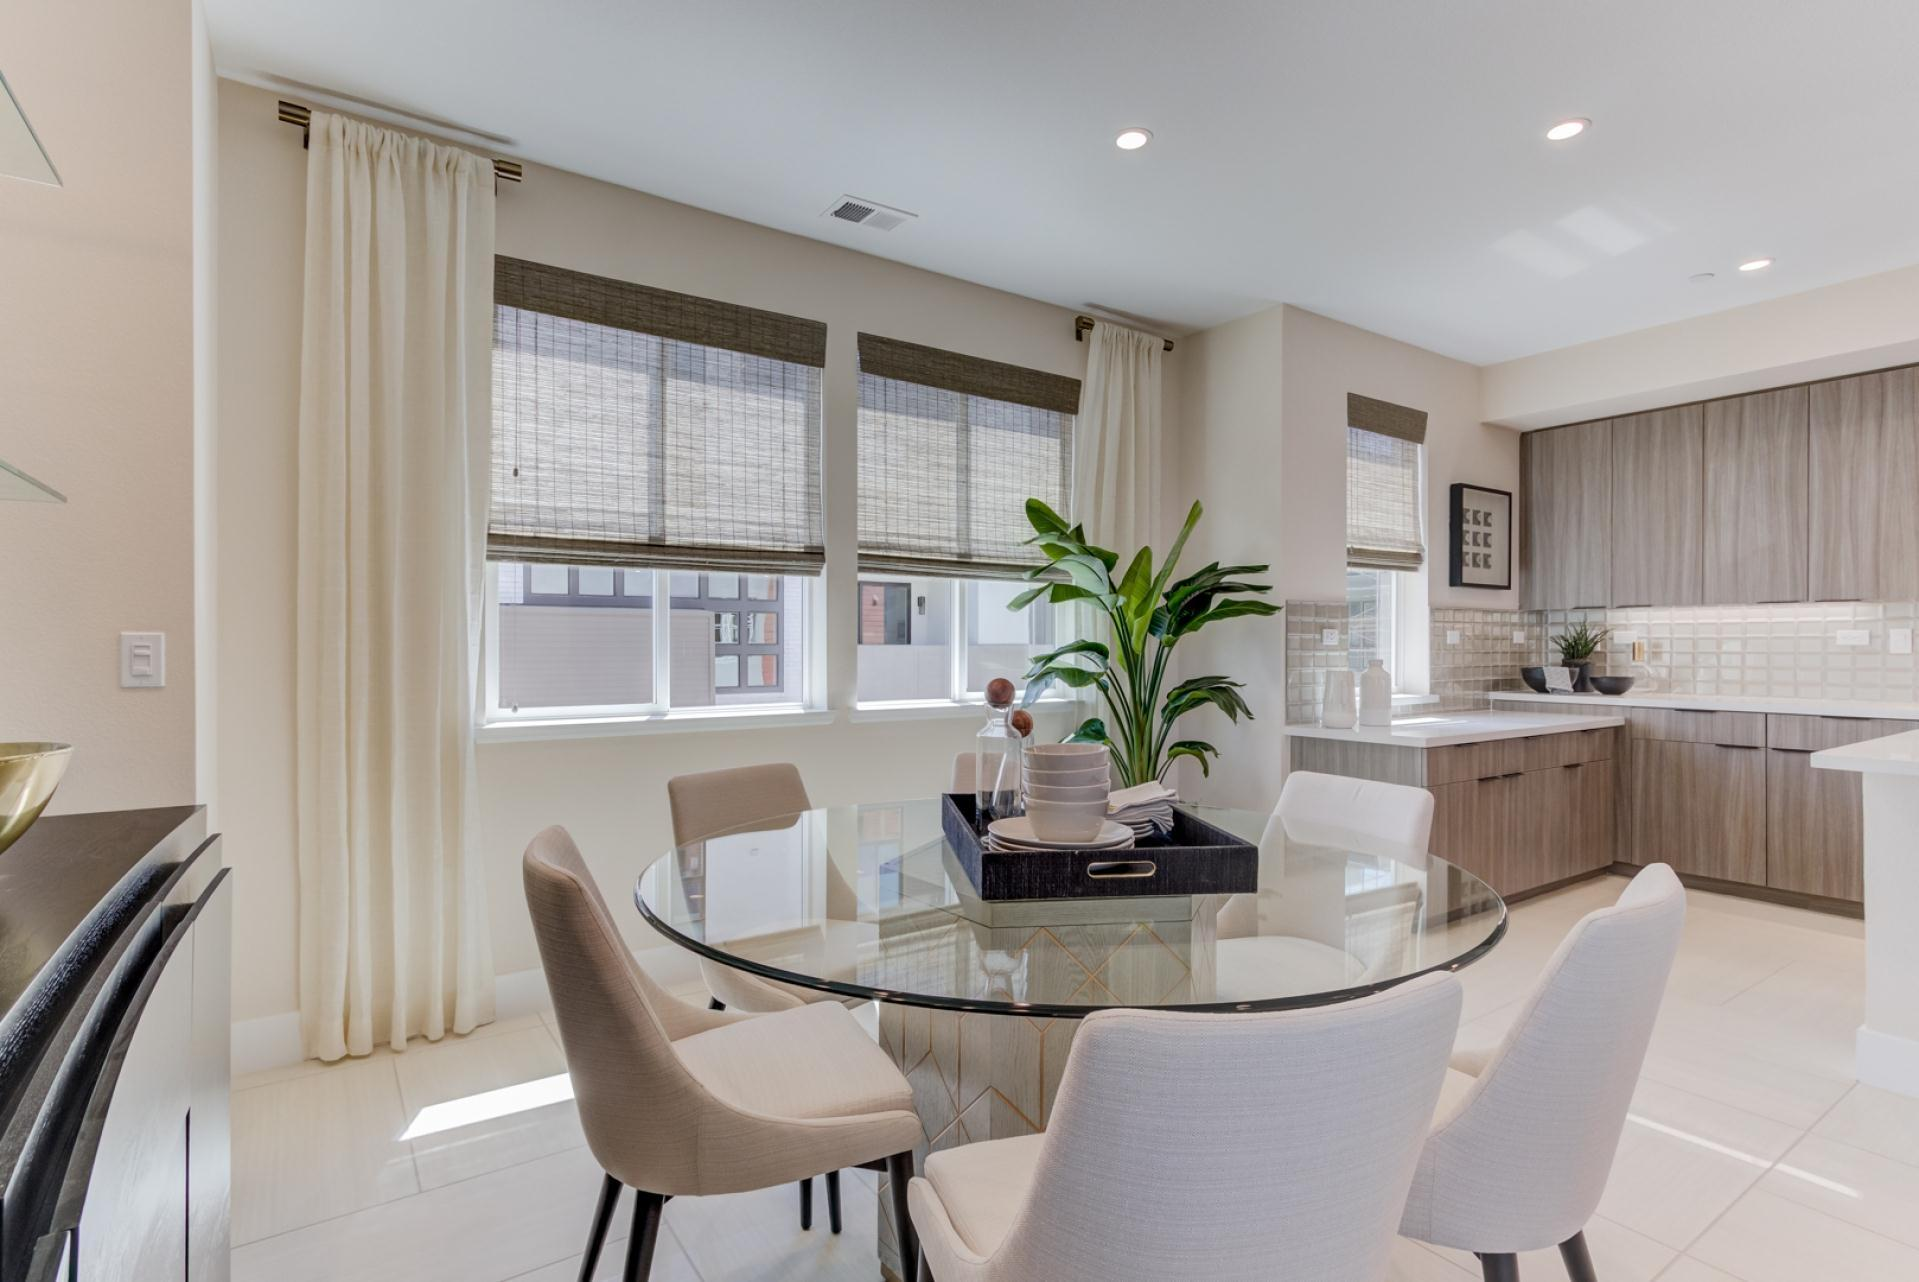 Kitchen featured in the Terraces Plan 5 By SummerHill Homes in San Jose, CA